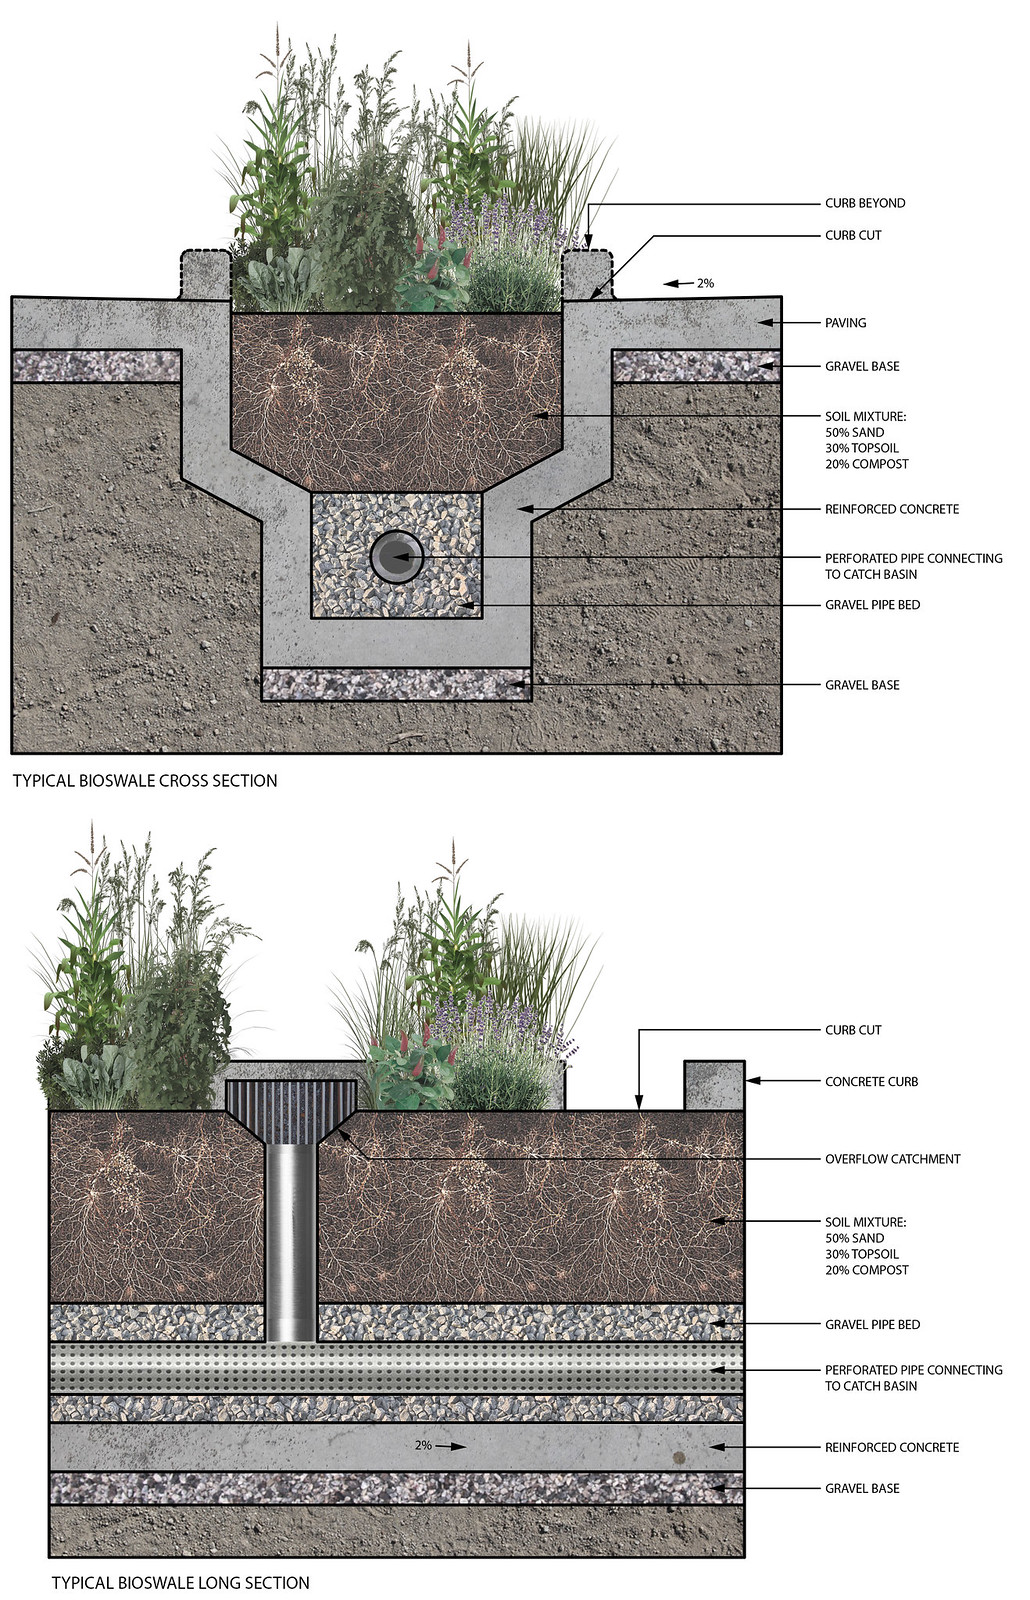 Integrated Urban Bioswale Components | Economies of Swale